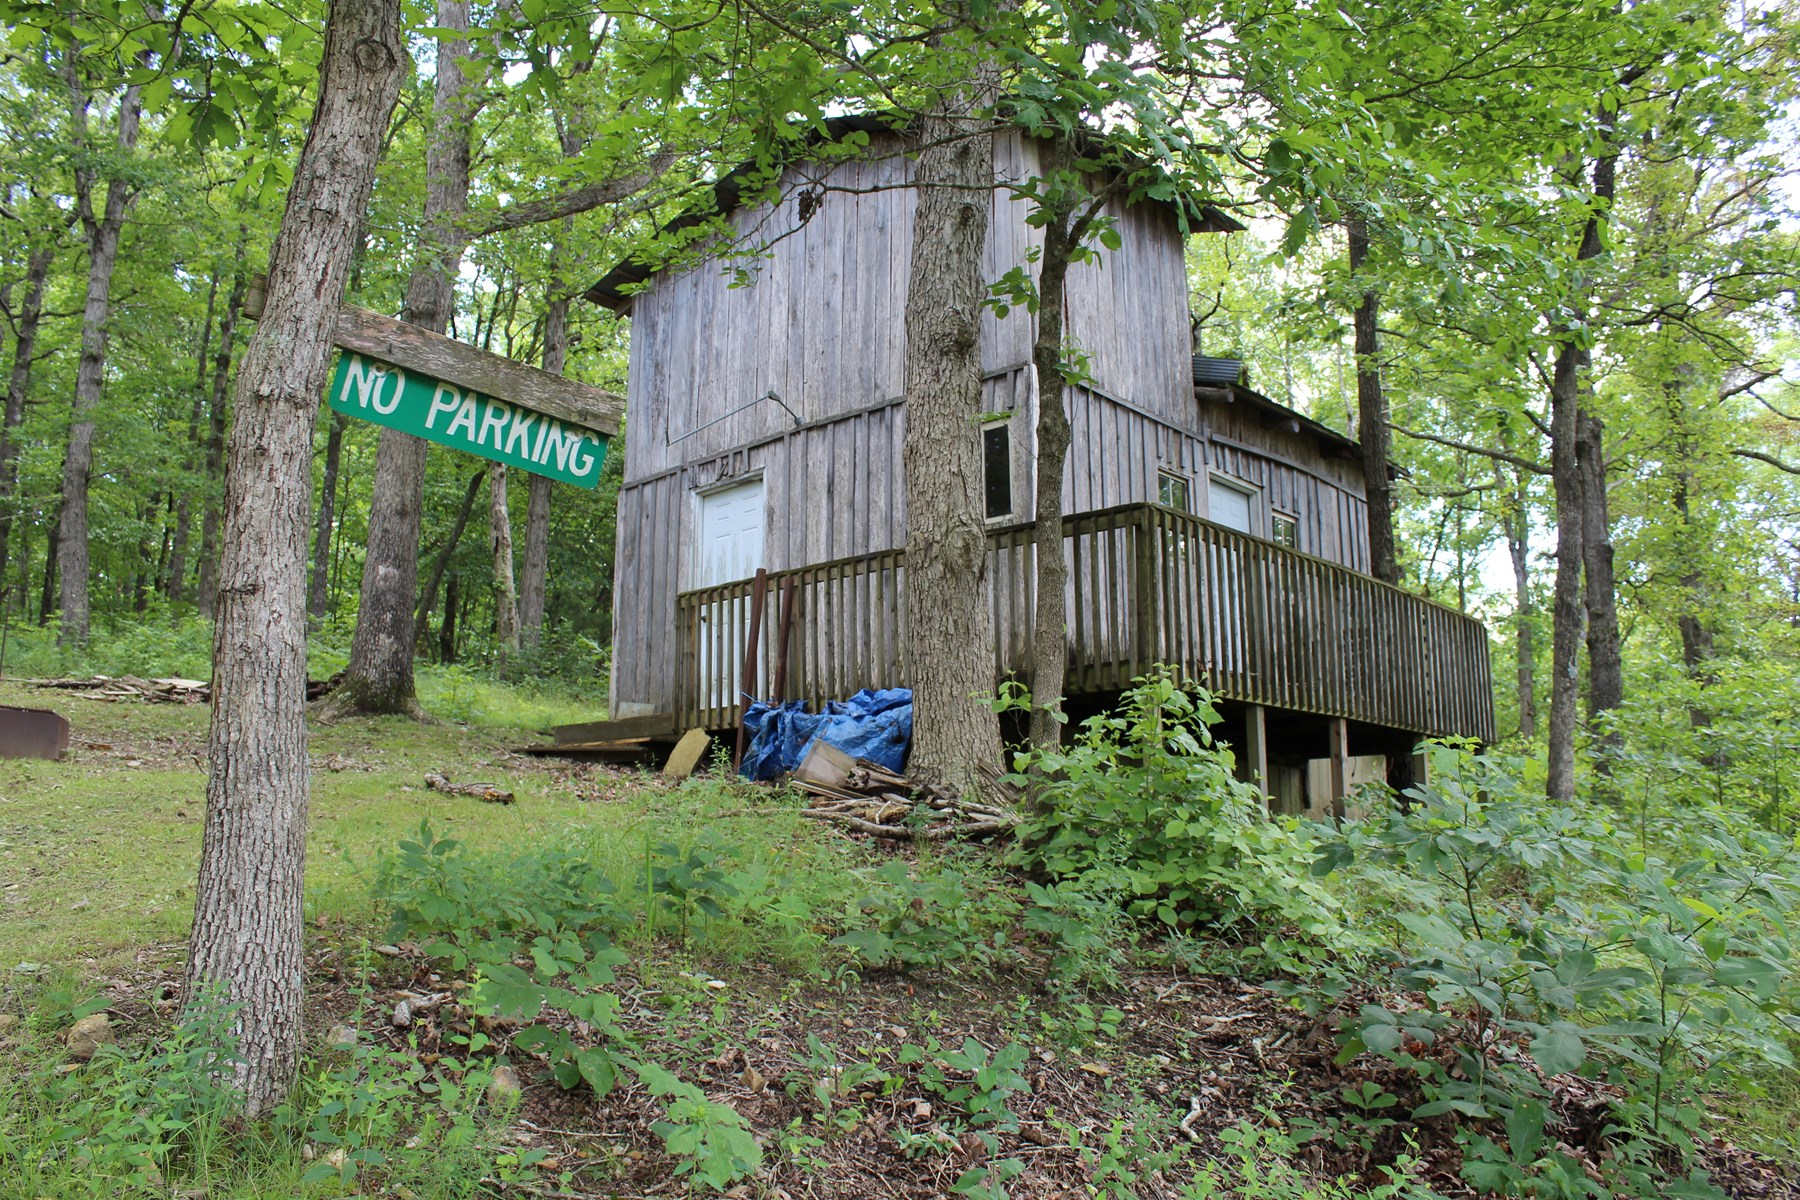 Land for Sale in Webster County, Missouri - Timber, Hunting